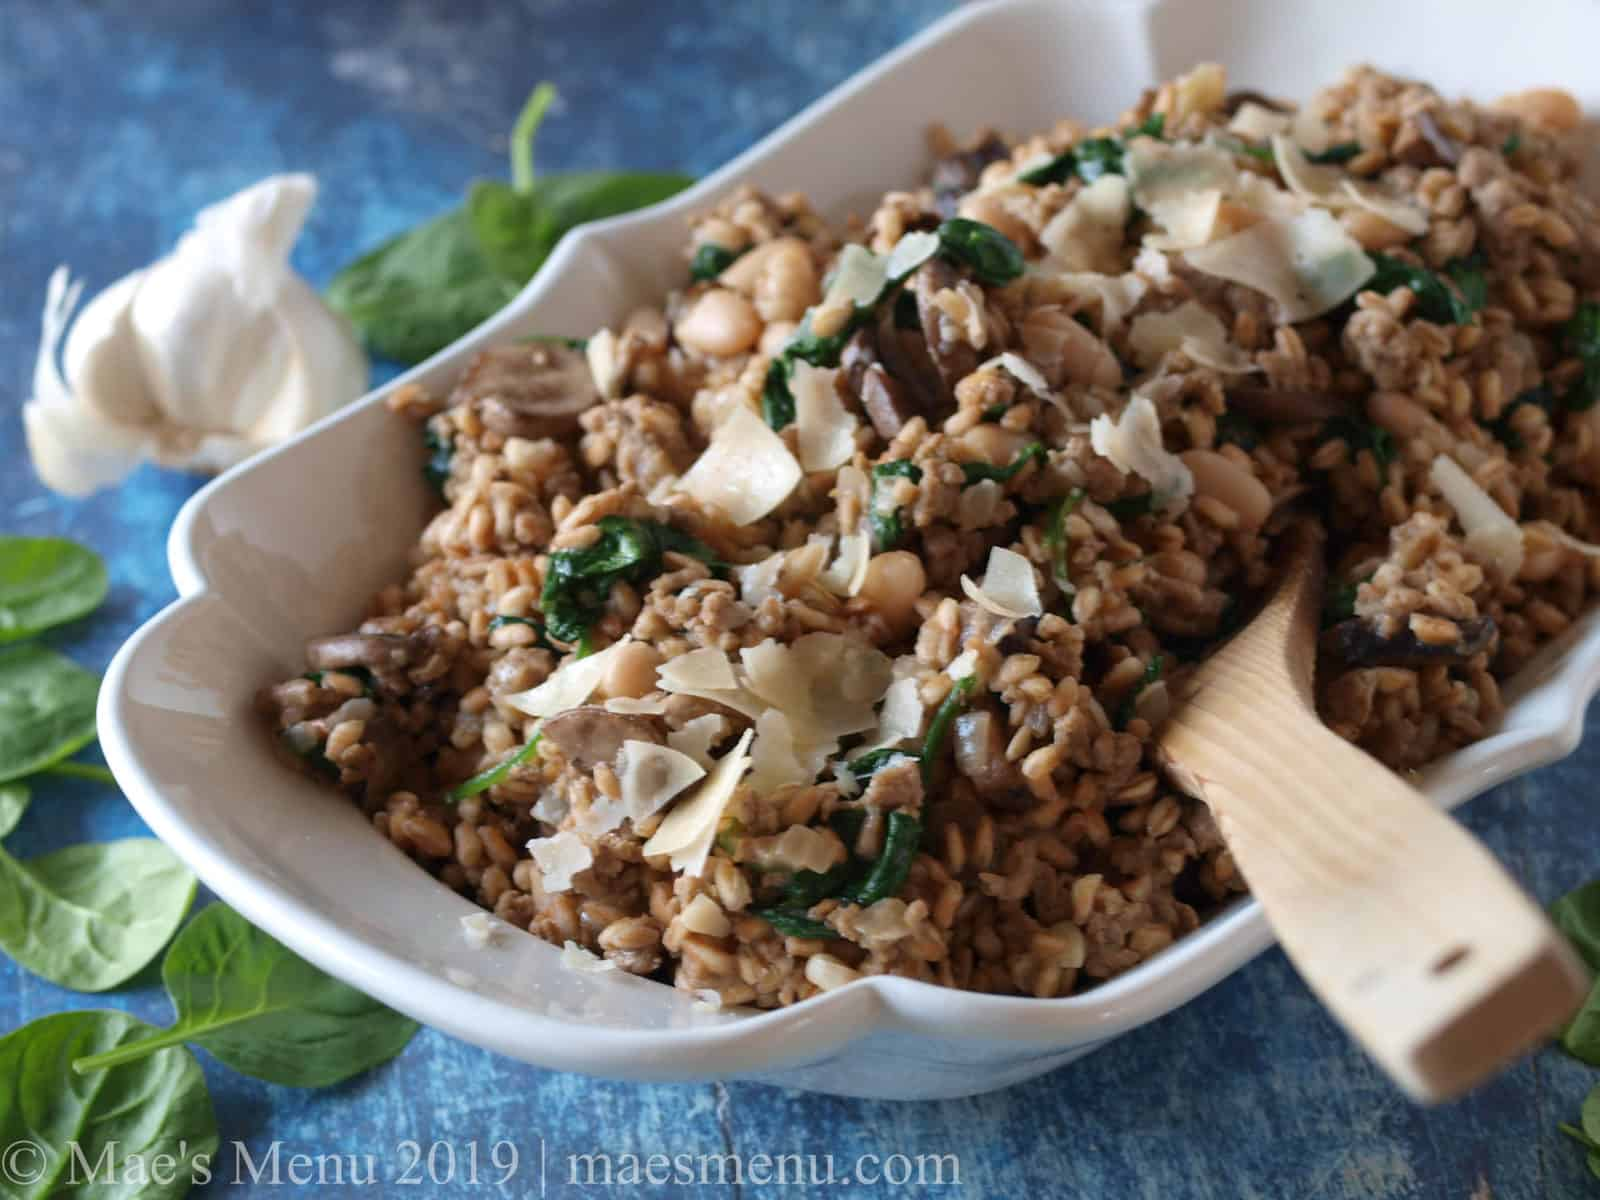 Serving dish of quick mushroom farro risotto next to ahead of garlic and baby spinach leaves.